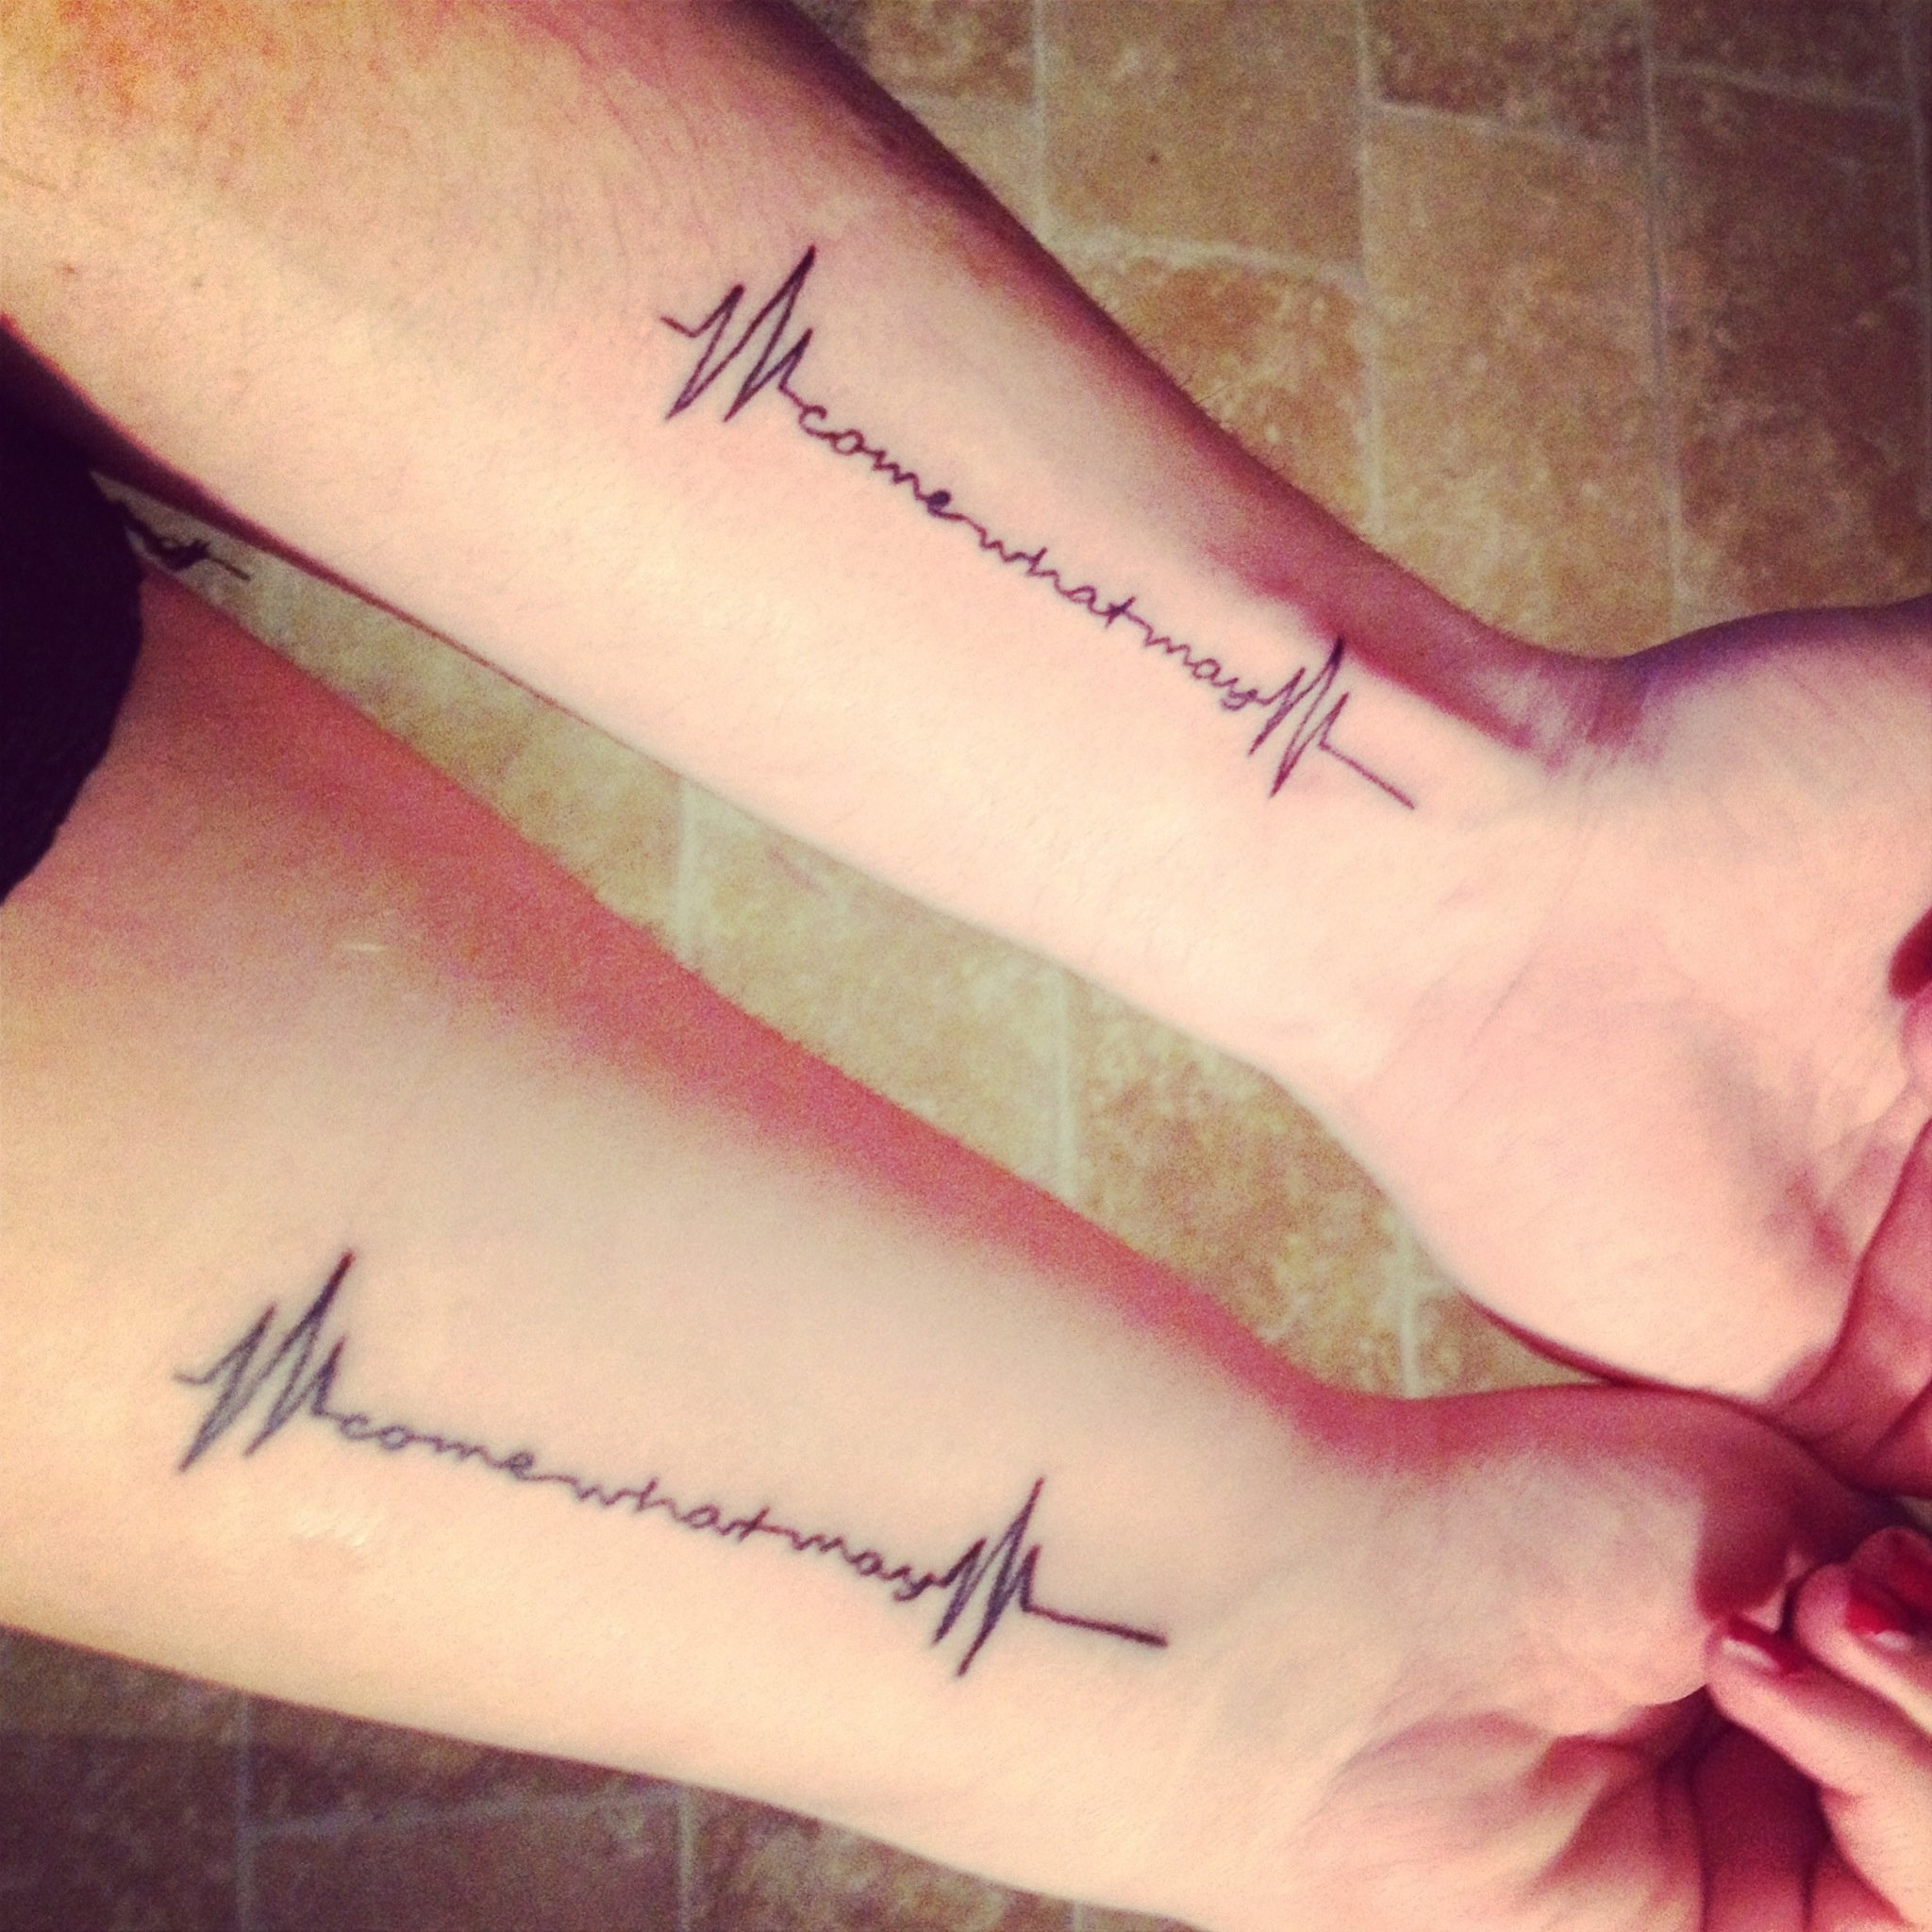 10 Amazing Matching Tattoo Ideas For Married Couples show your love through matching tattoos 2020